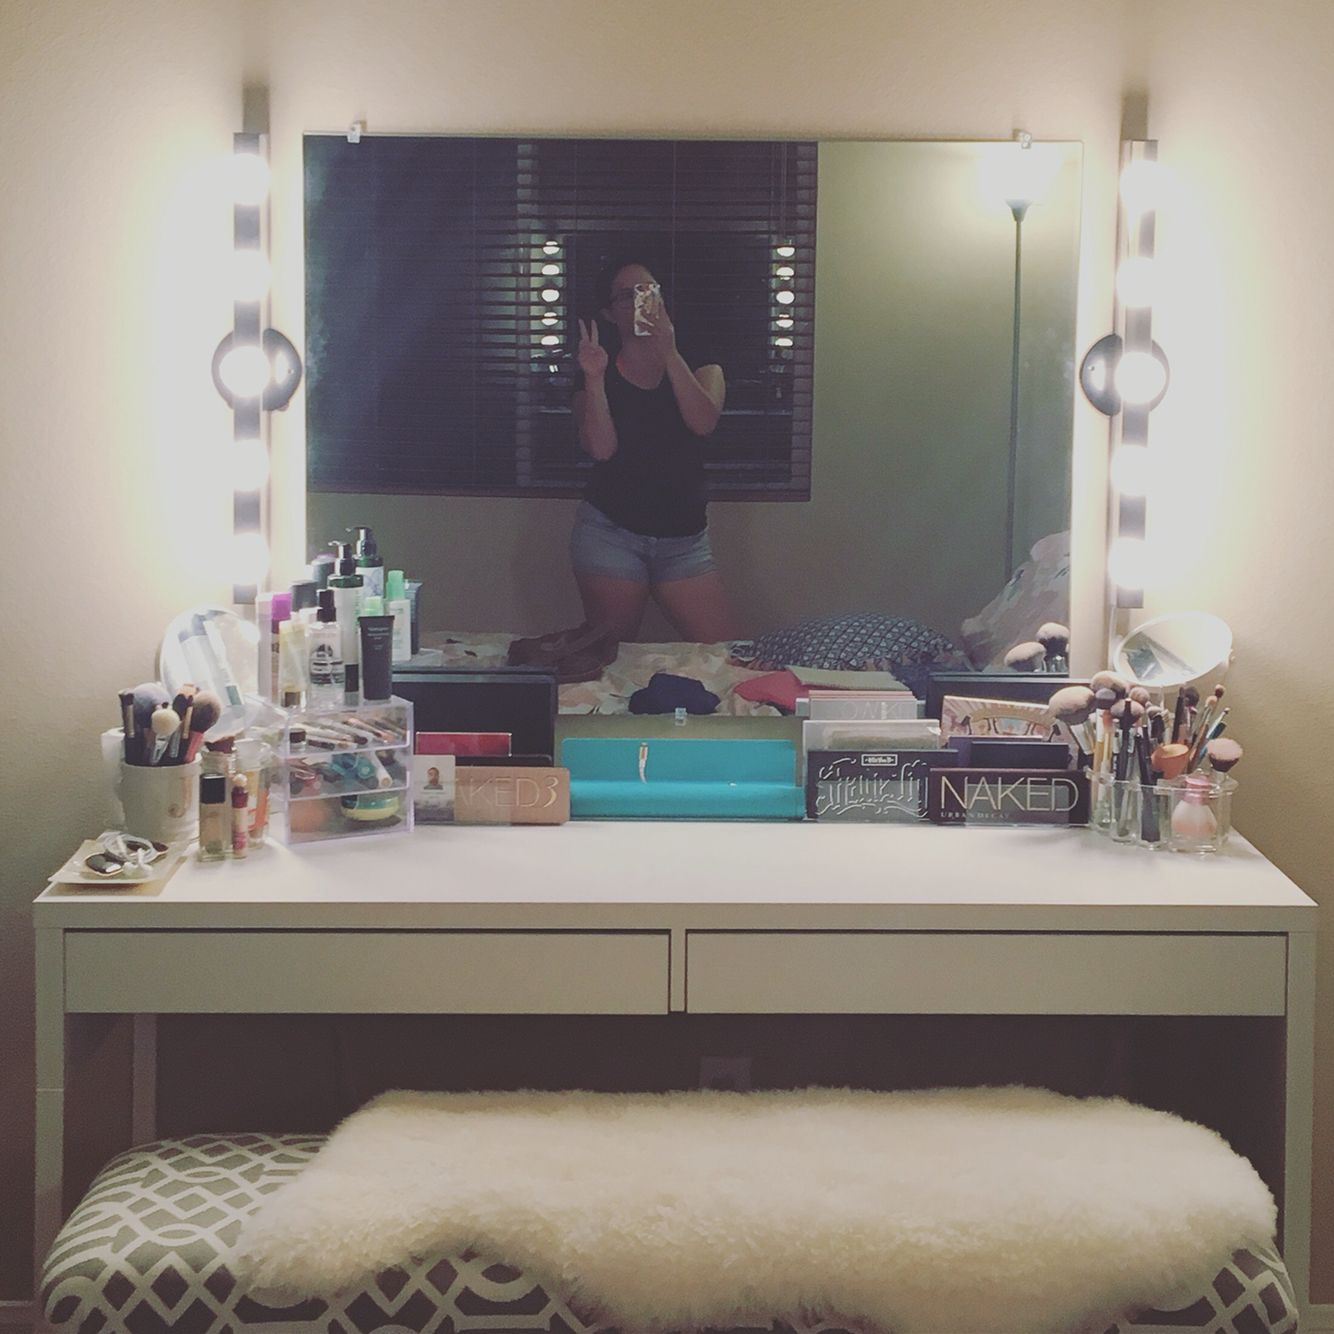 DIY Vanity! Mirror from Lowes, light fixture from IKEA, desk from IKEA, bench was reupholstered using fabric and cushion from Joanns, fur from IKEA